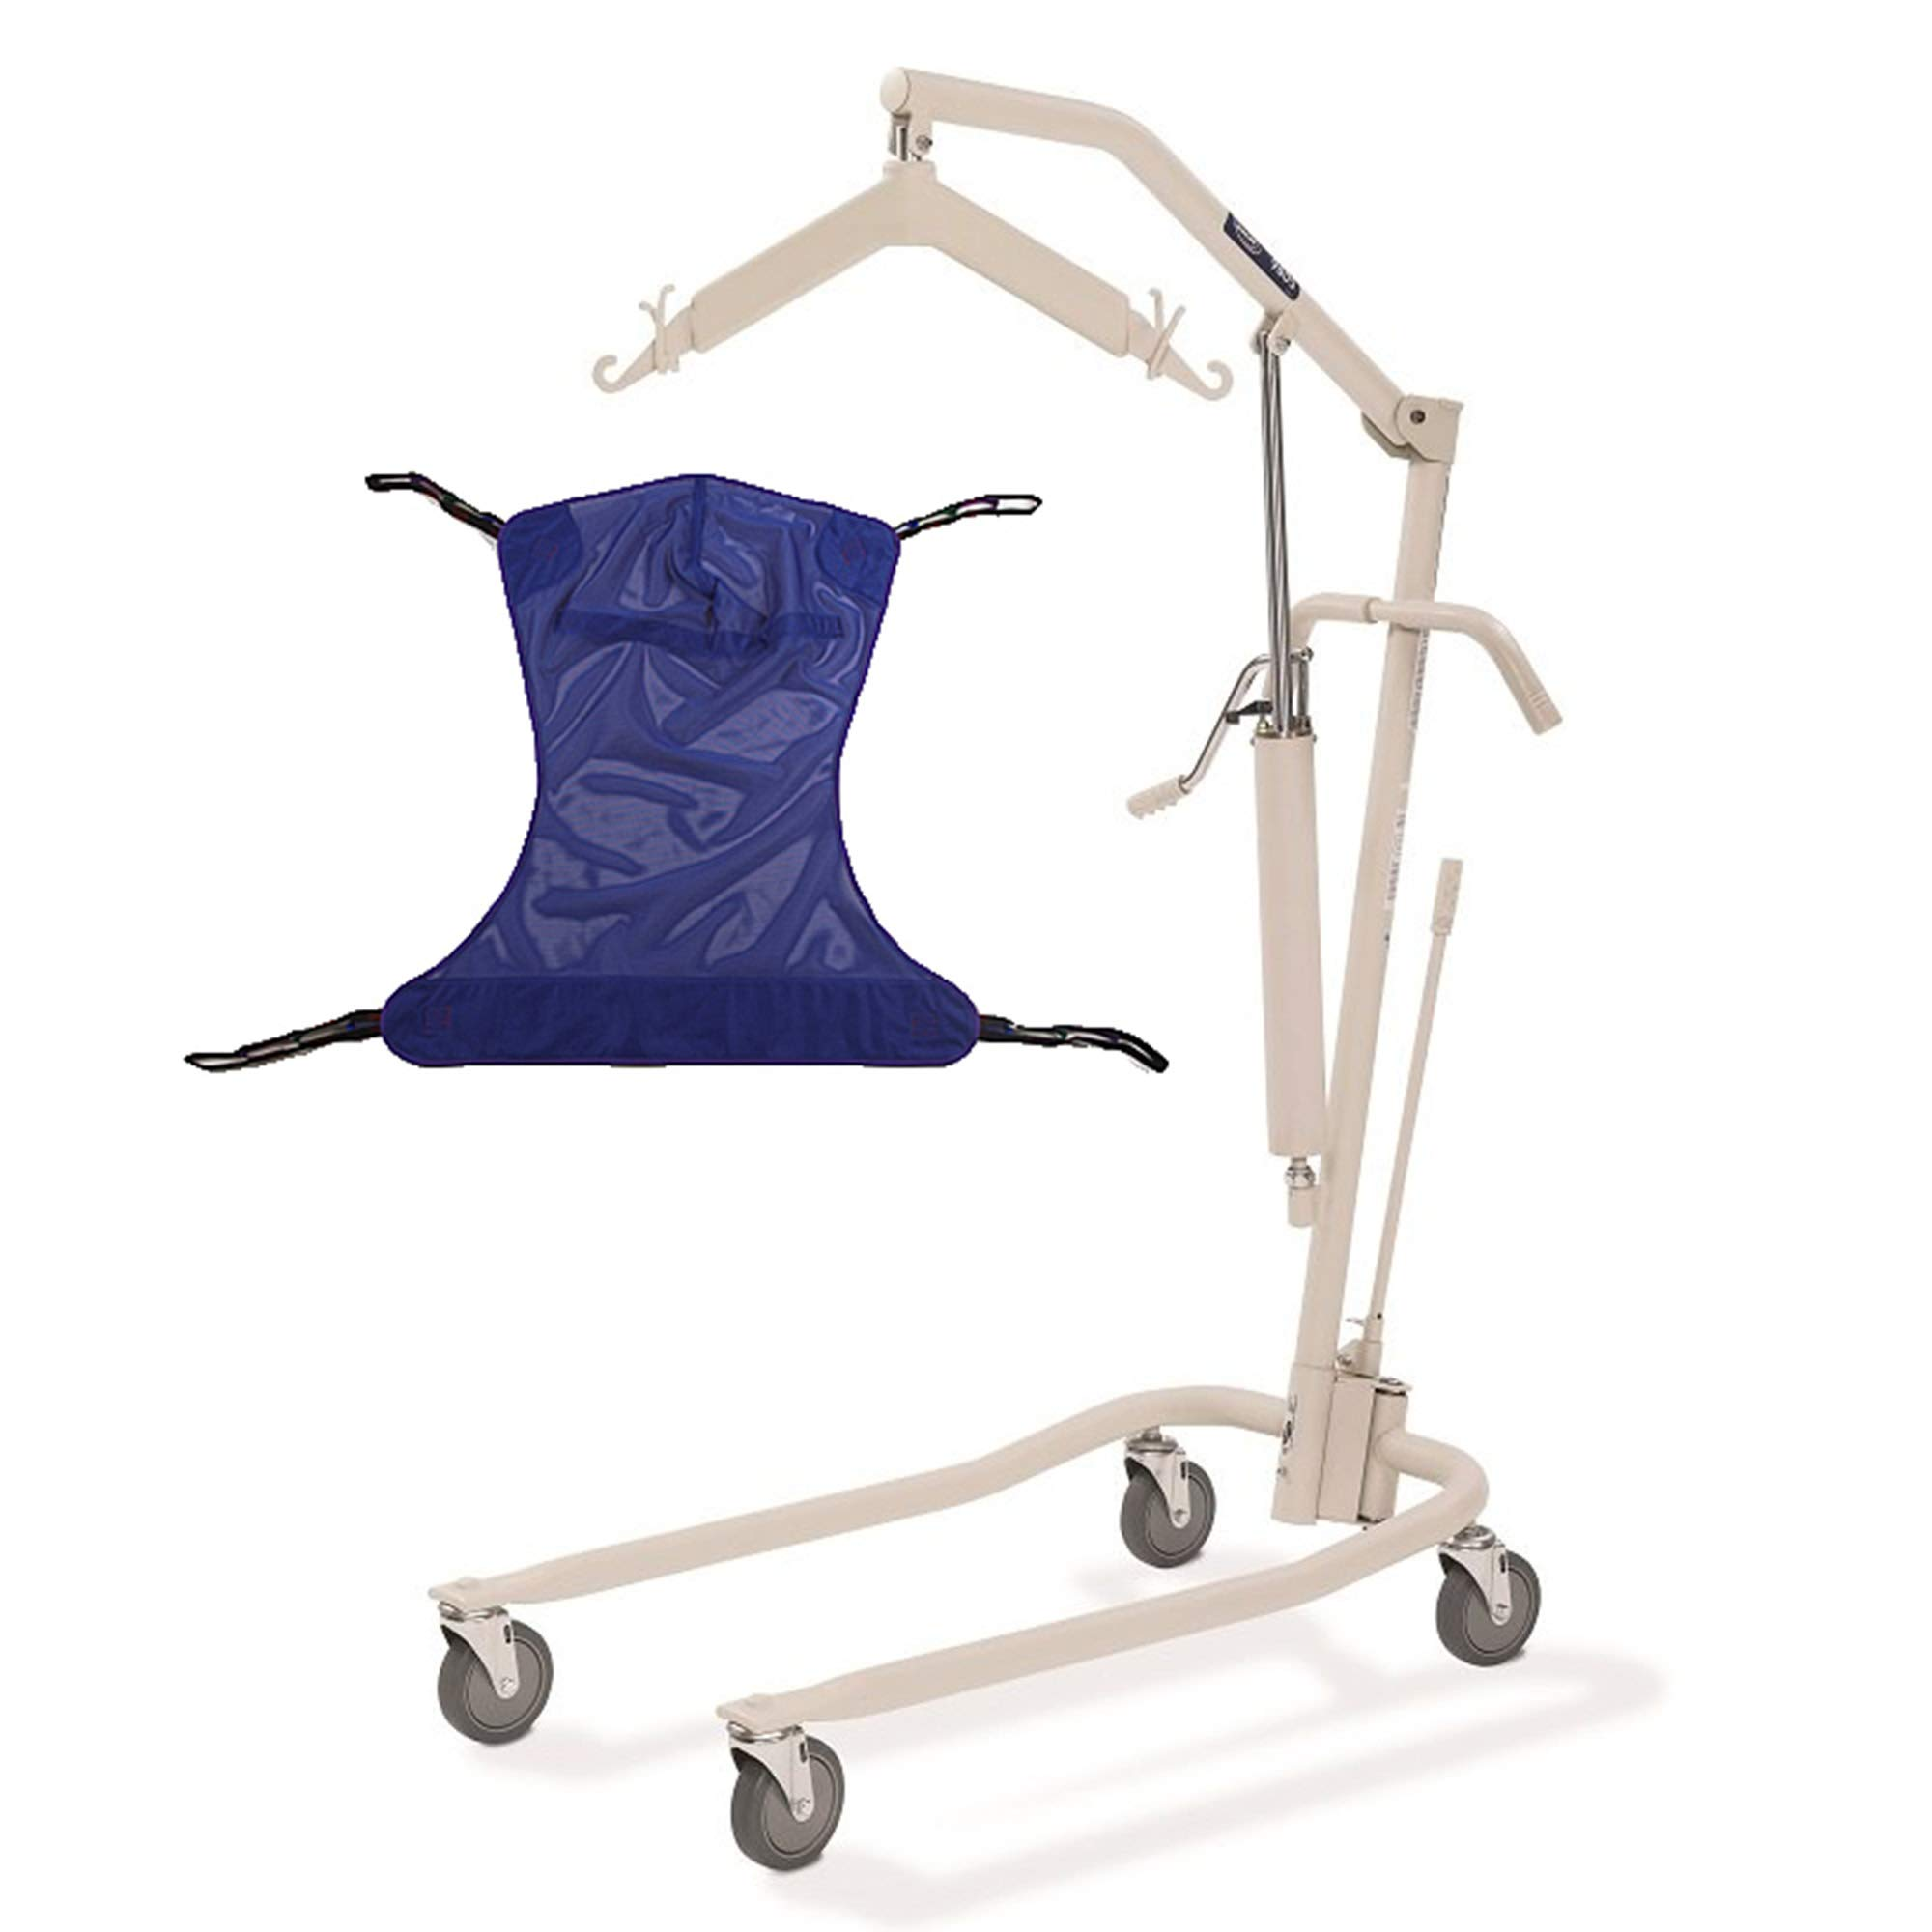 Invacare Painted Hydraulic Lift with Full Body R110 (Medium) Mesh Sling   450 lbs. weight capacity   9805P model